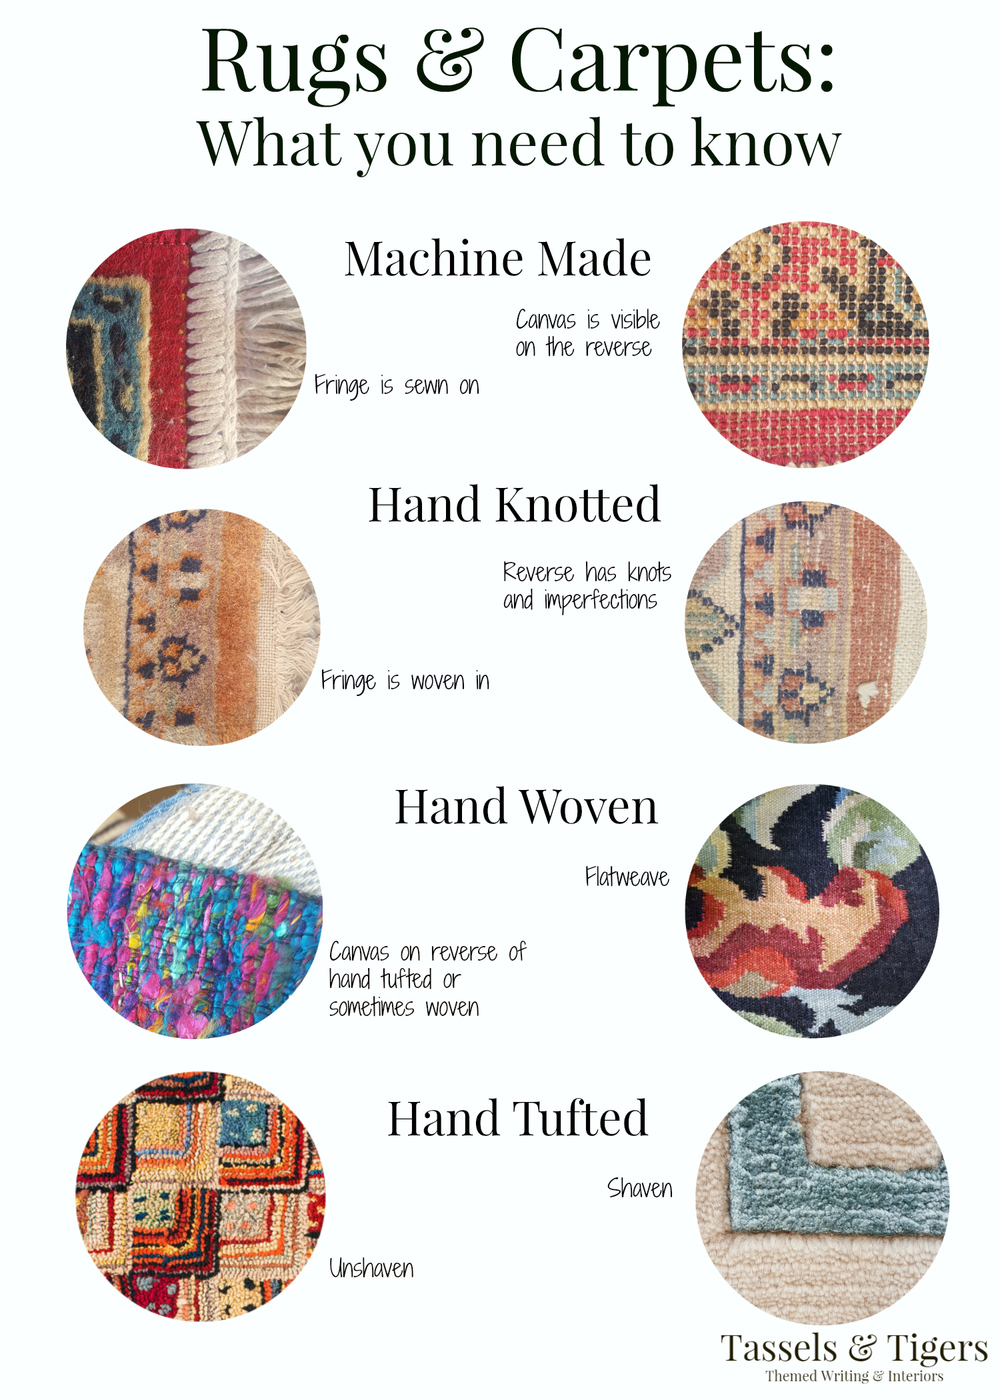 The Difference between machine made, hand woven, hand knotted and hand tufted rugs